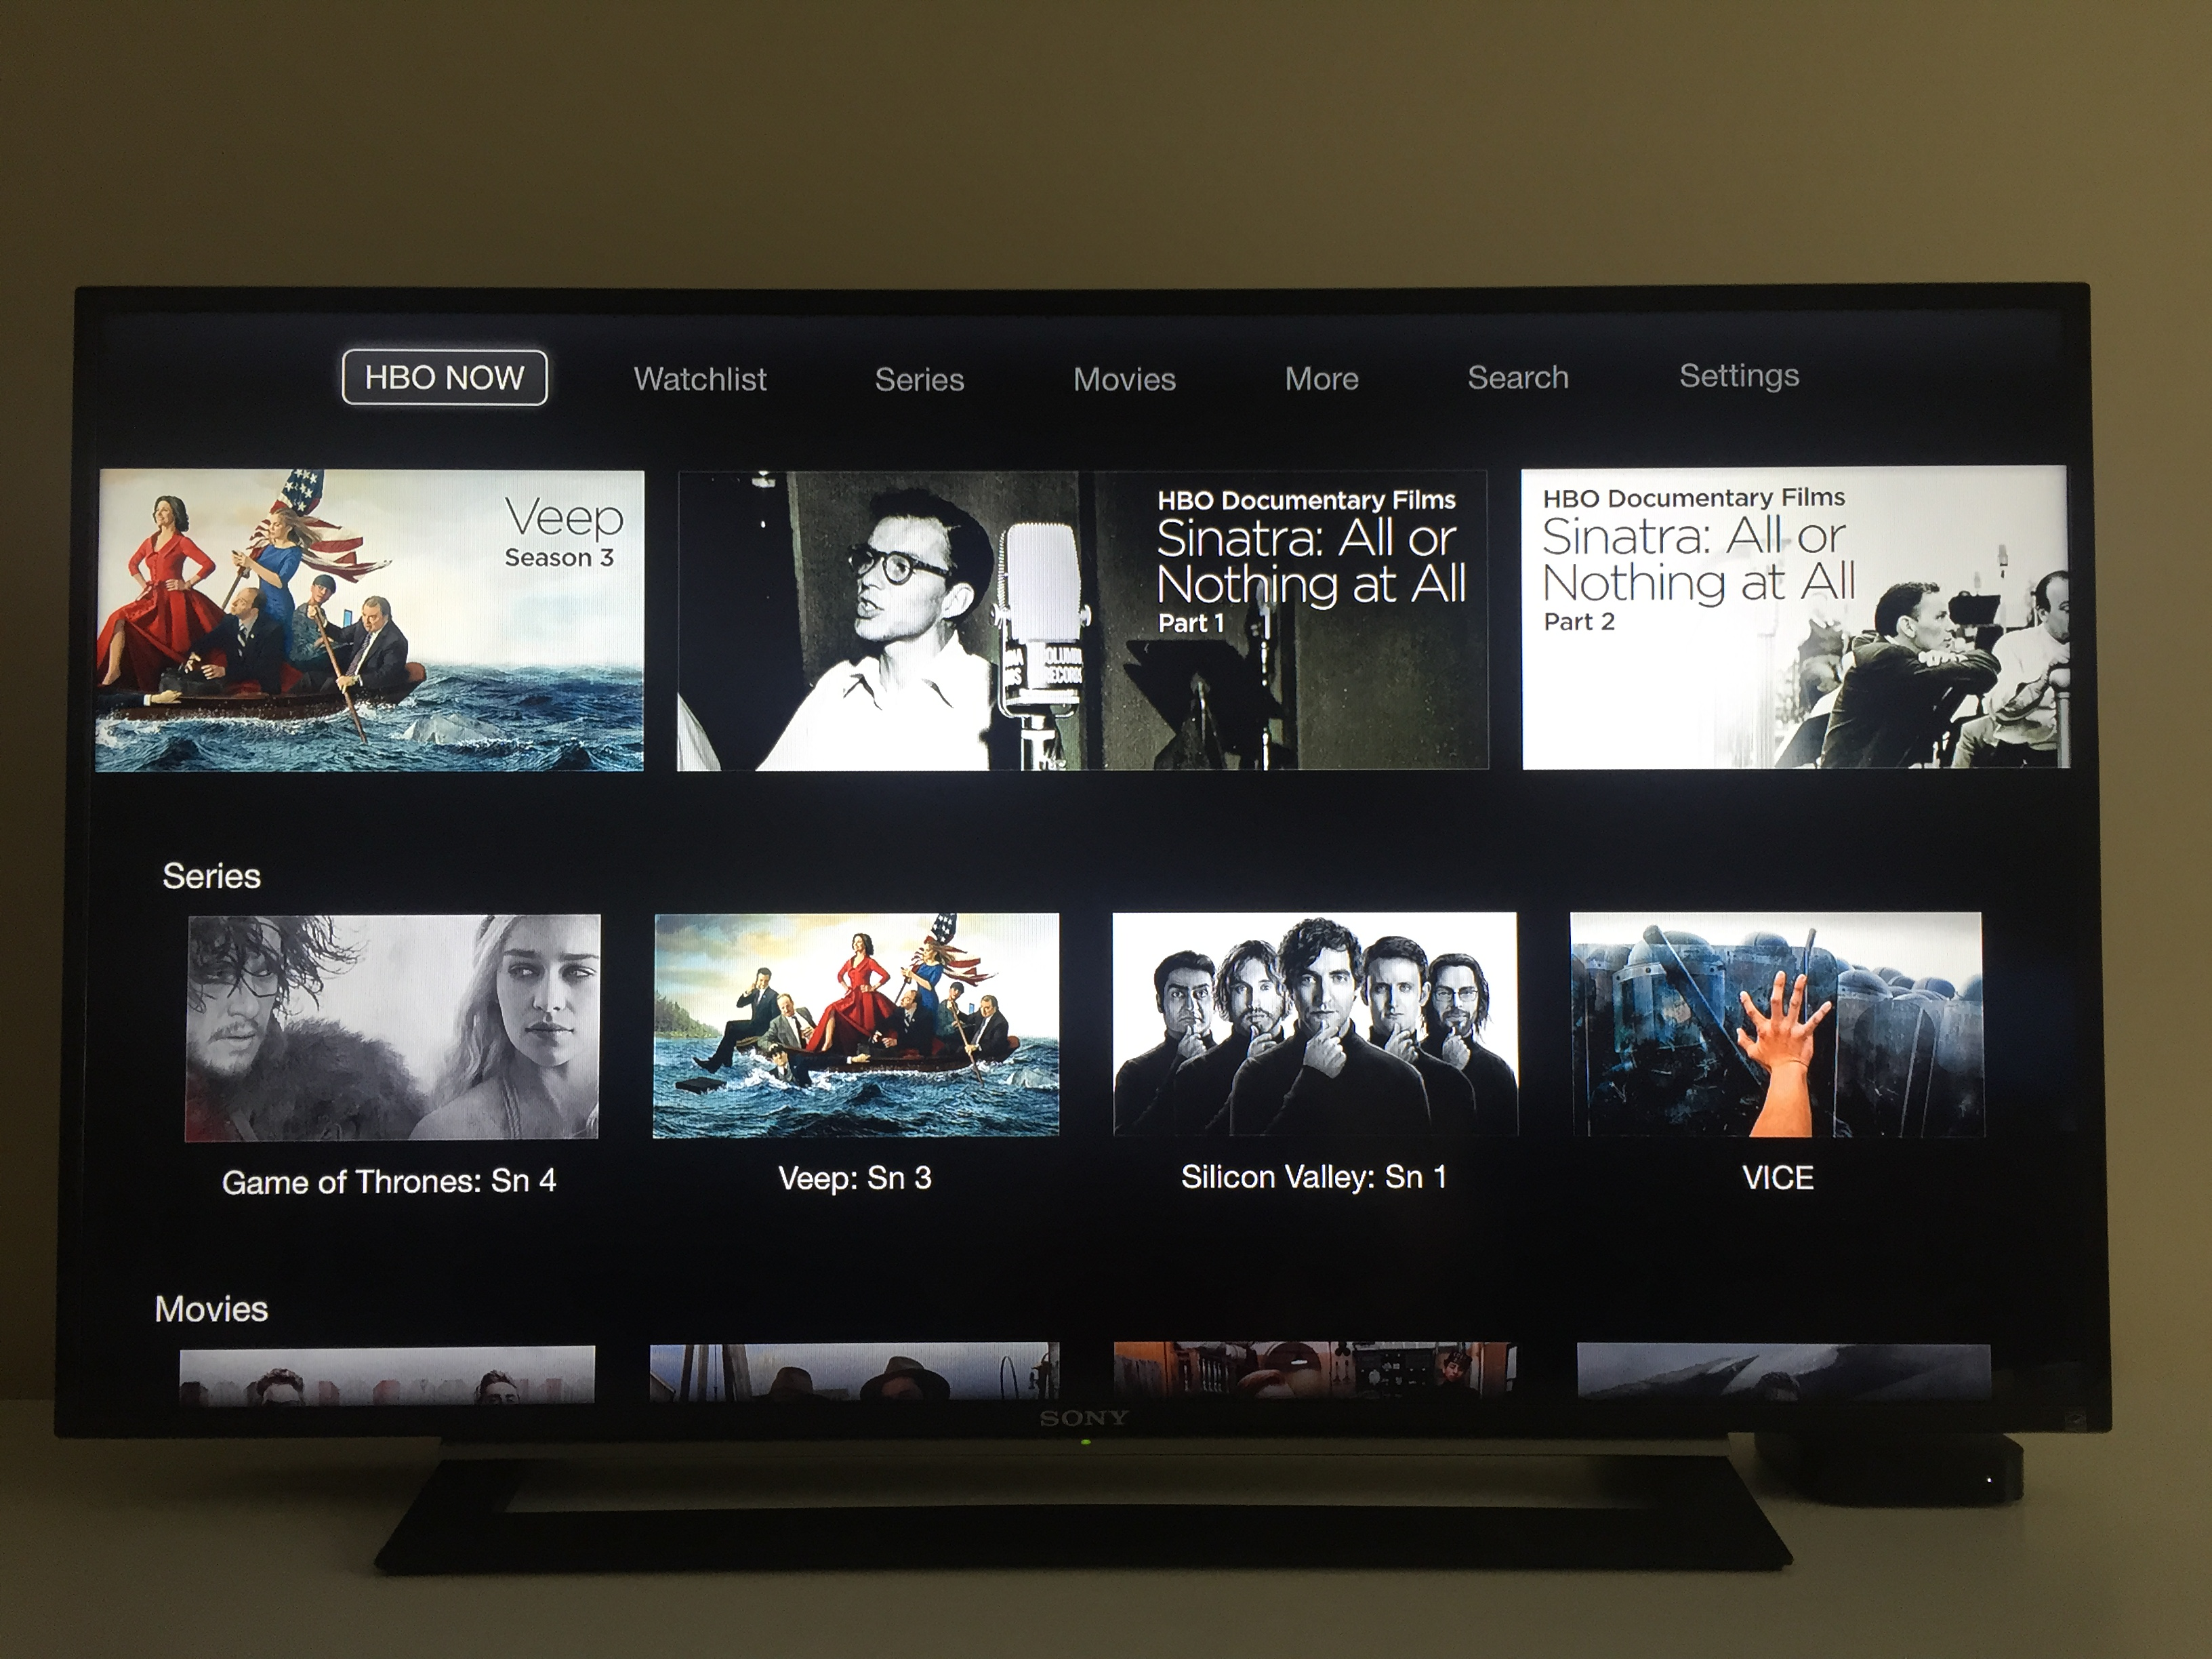 HBO NOW standalone streaming service debuts on Apple TV